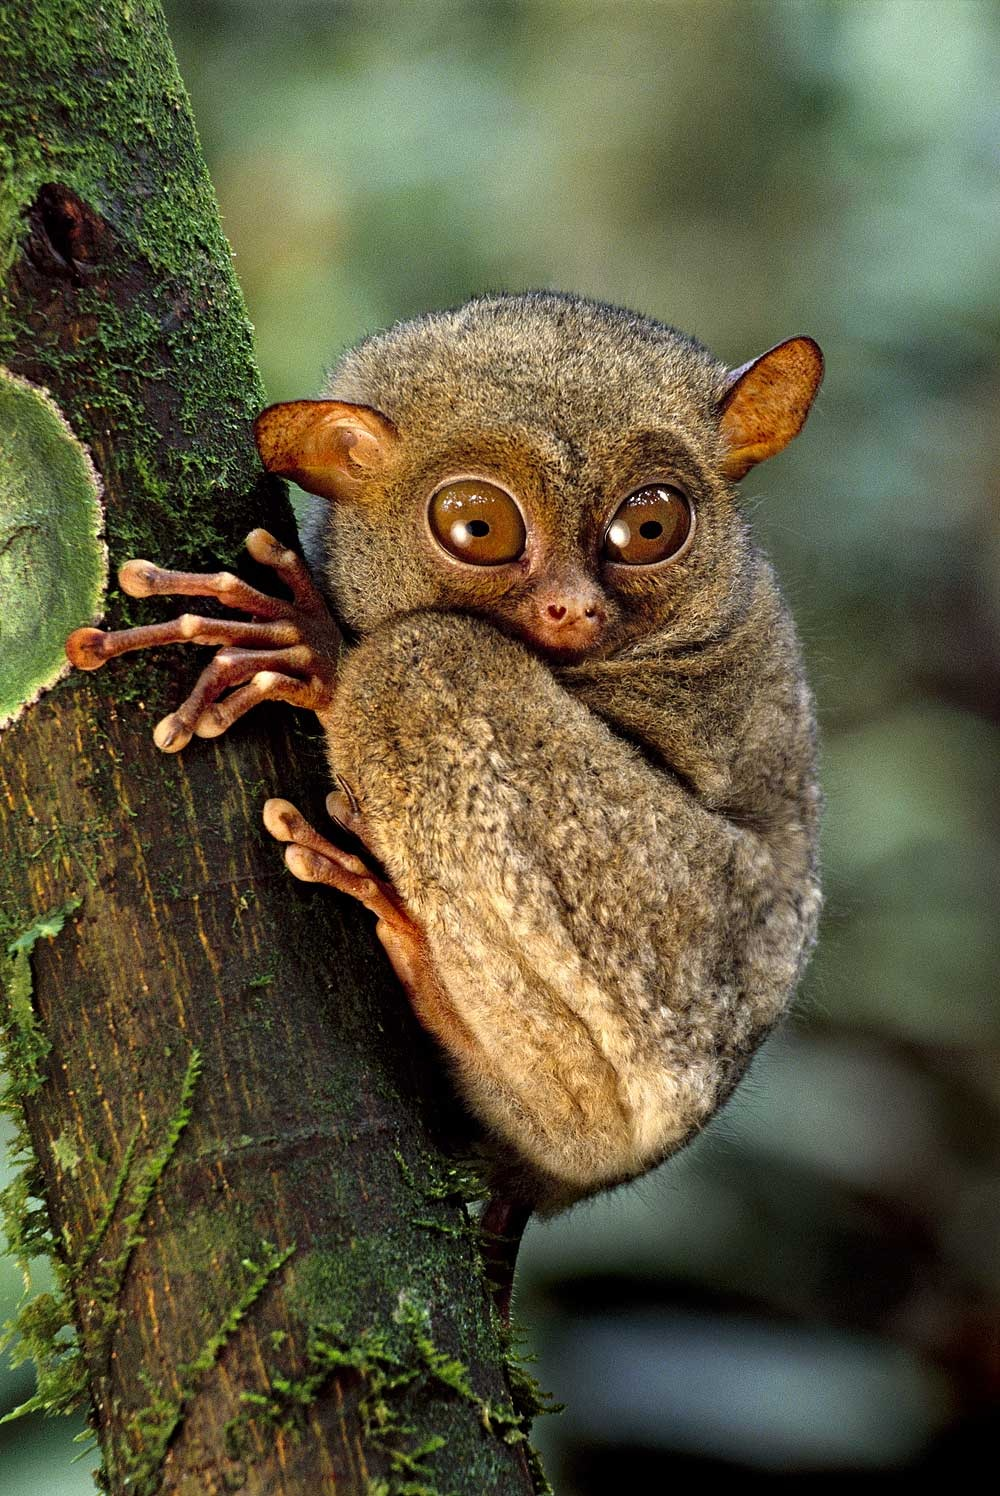 animals nature amazing borneo tarsier monkey endangered animal earth species creative geographic madagascar national cross between discover lanting tarsius frans